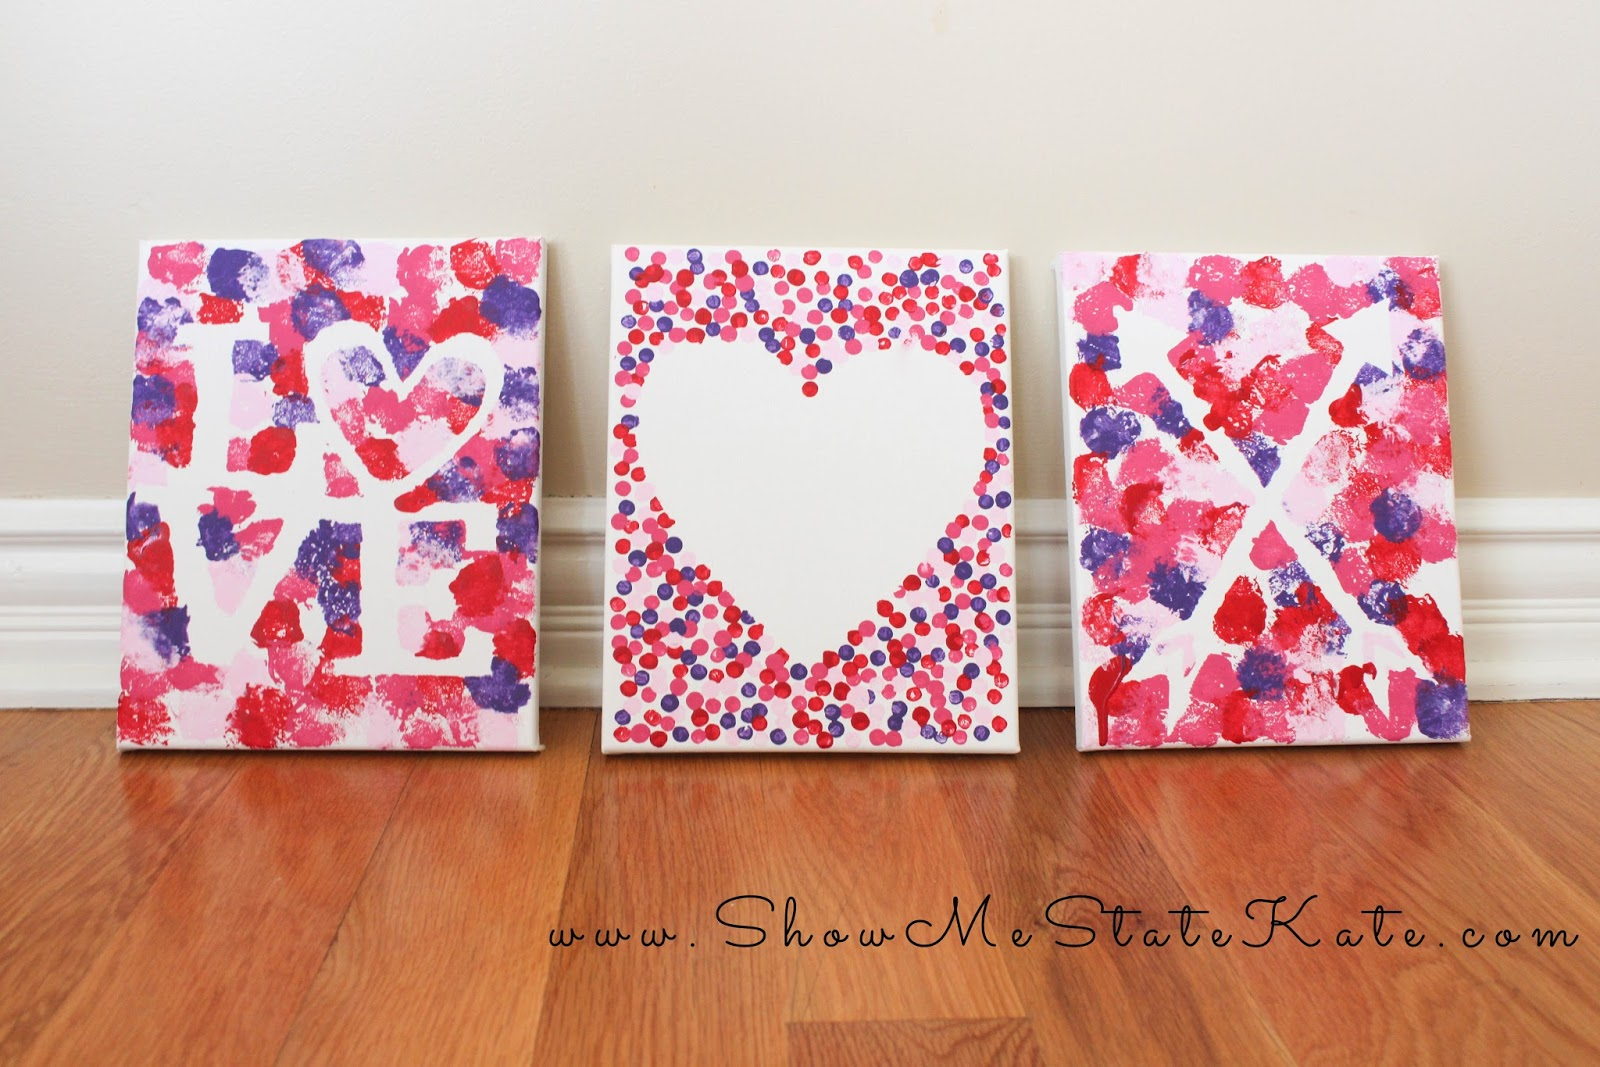 Show Me State Kate Valentine S Day Canvas Art For Kids Great Party Craft